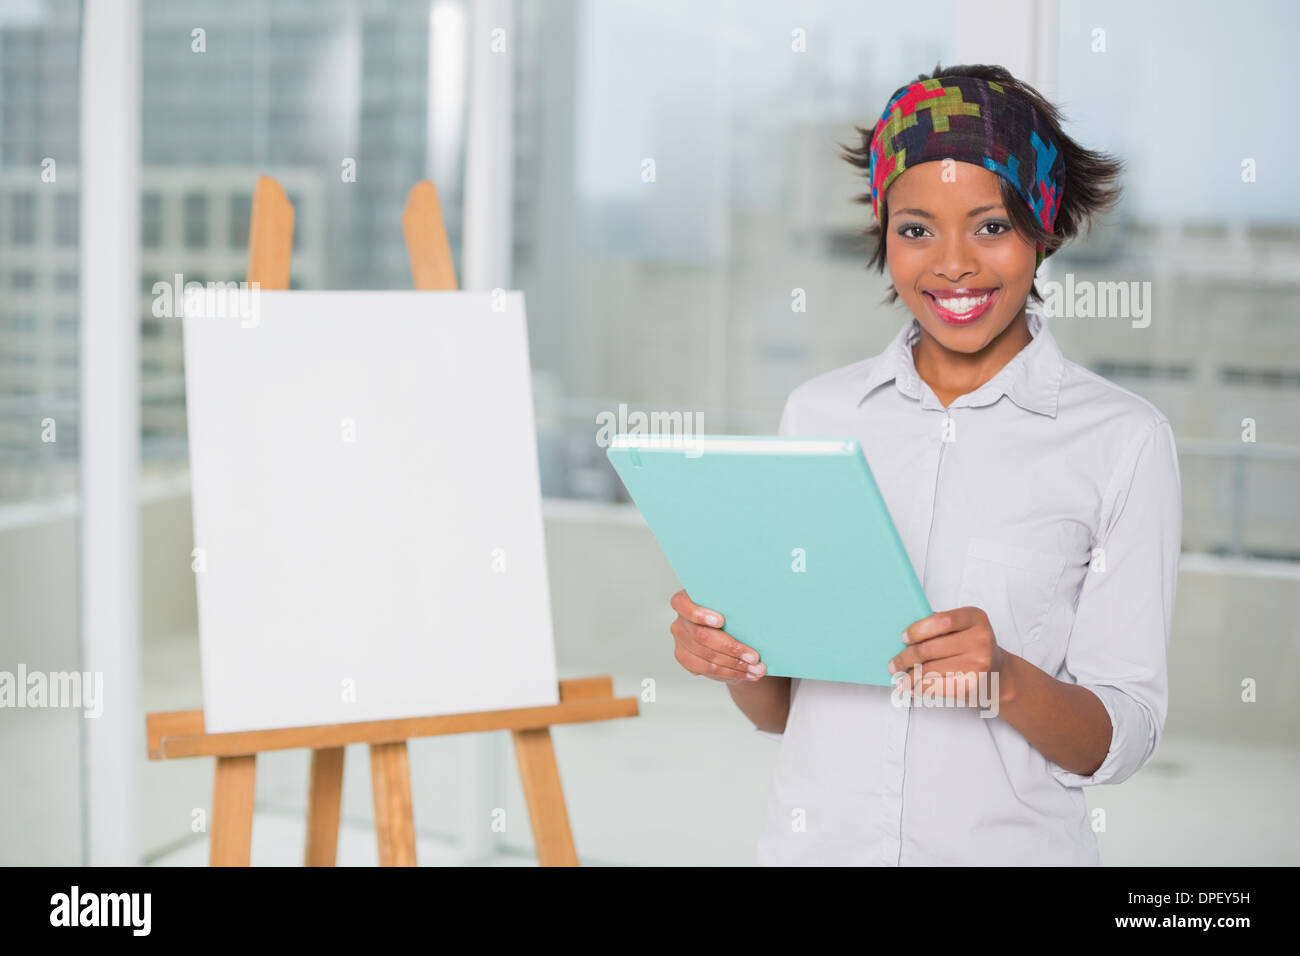 Artistique Smiling woman holding sketchpad Photo Stock